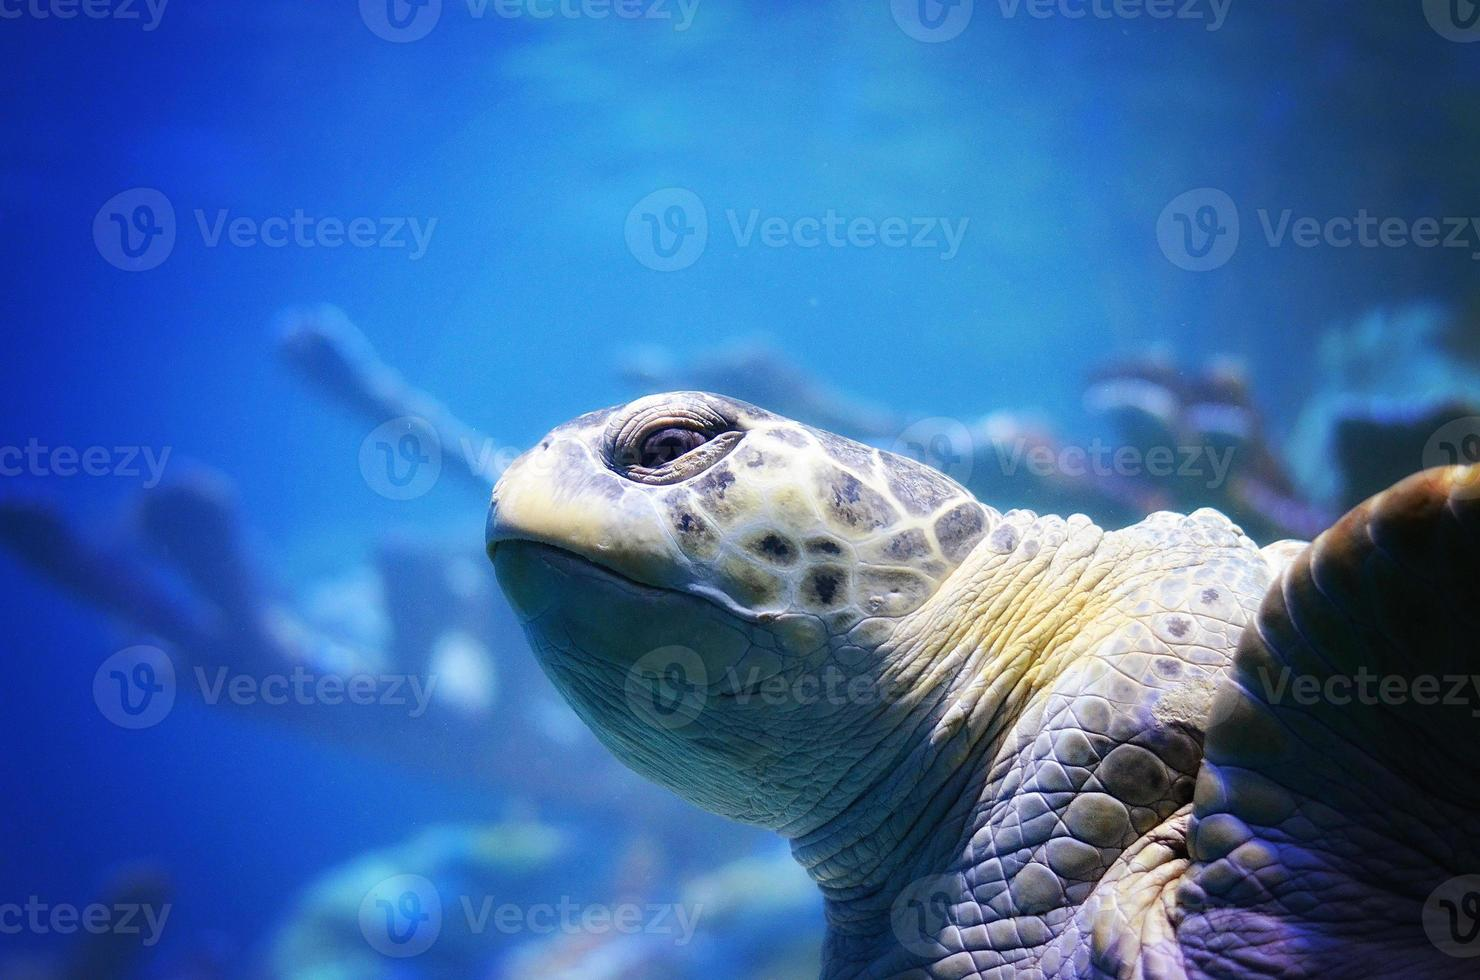 Blue and turtle photo